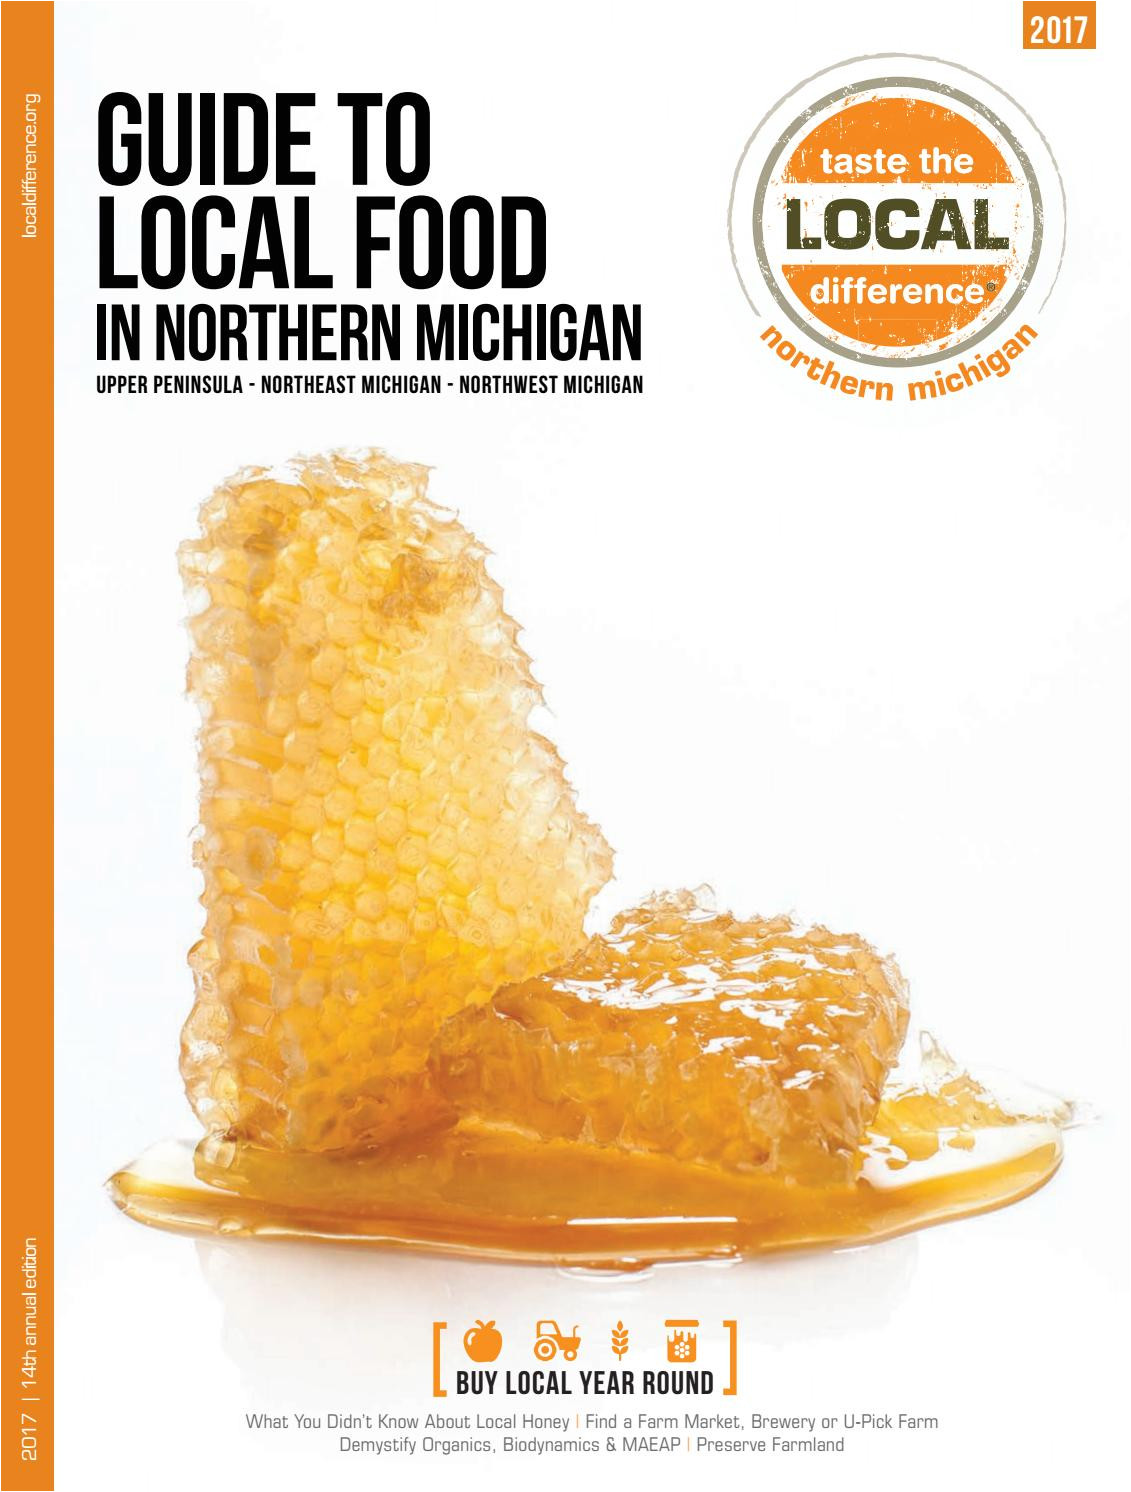 Tom S Food Market East Bay Traverse City 2017 Guide to Local Food for northern Michigan by Taste the Local